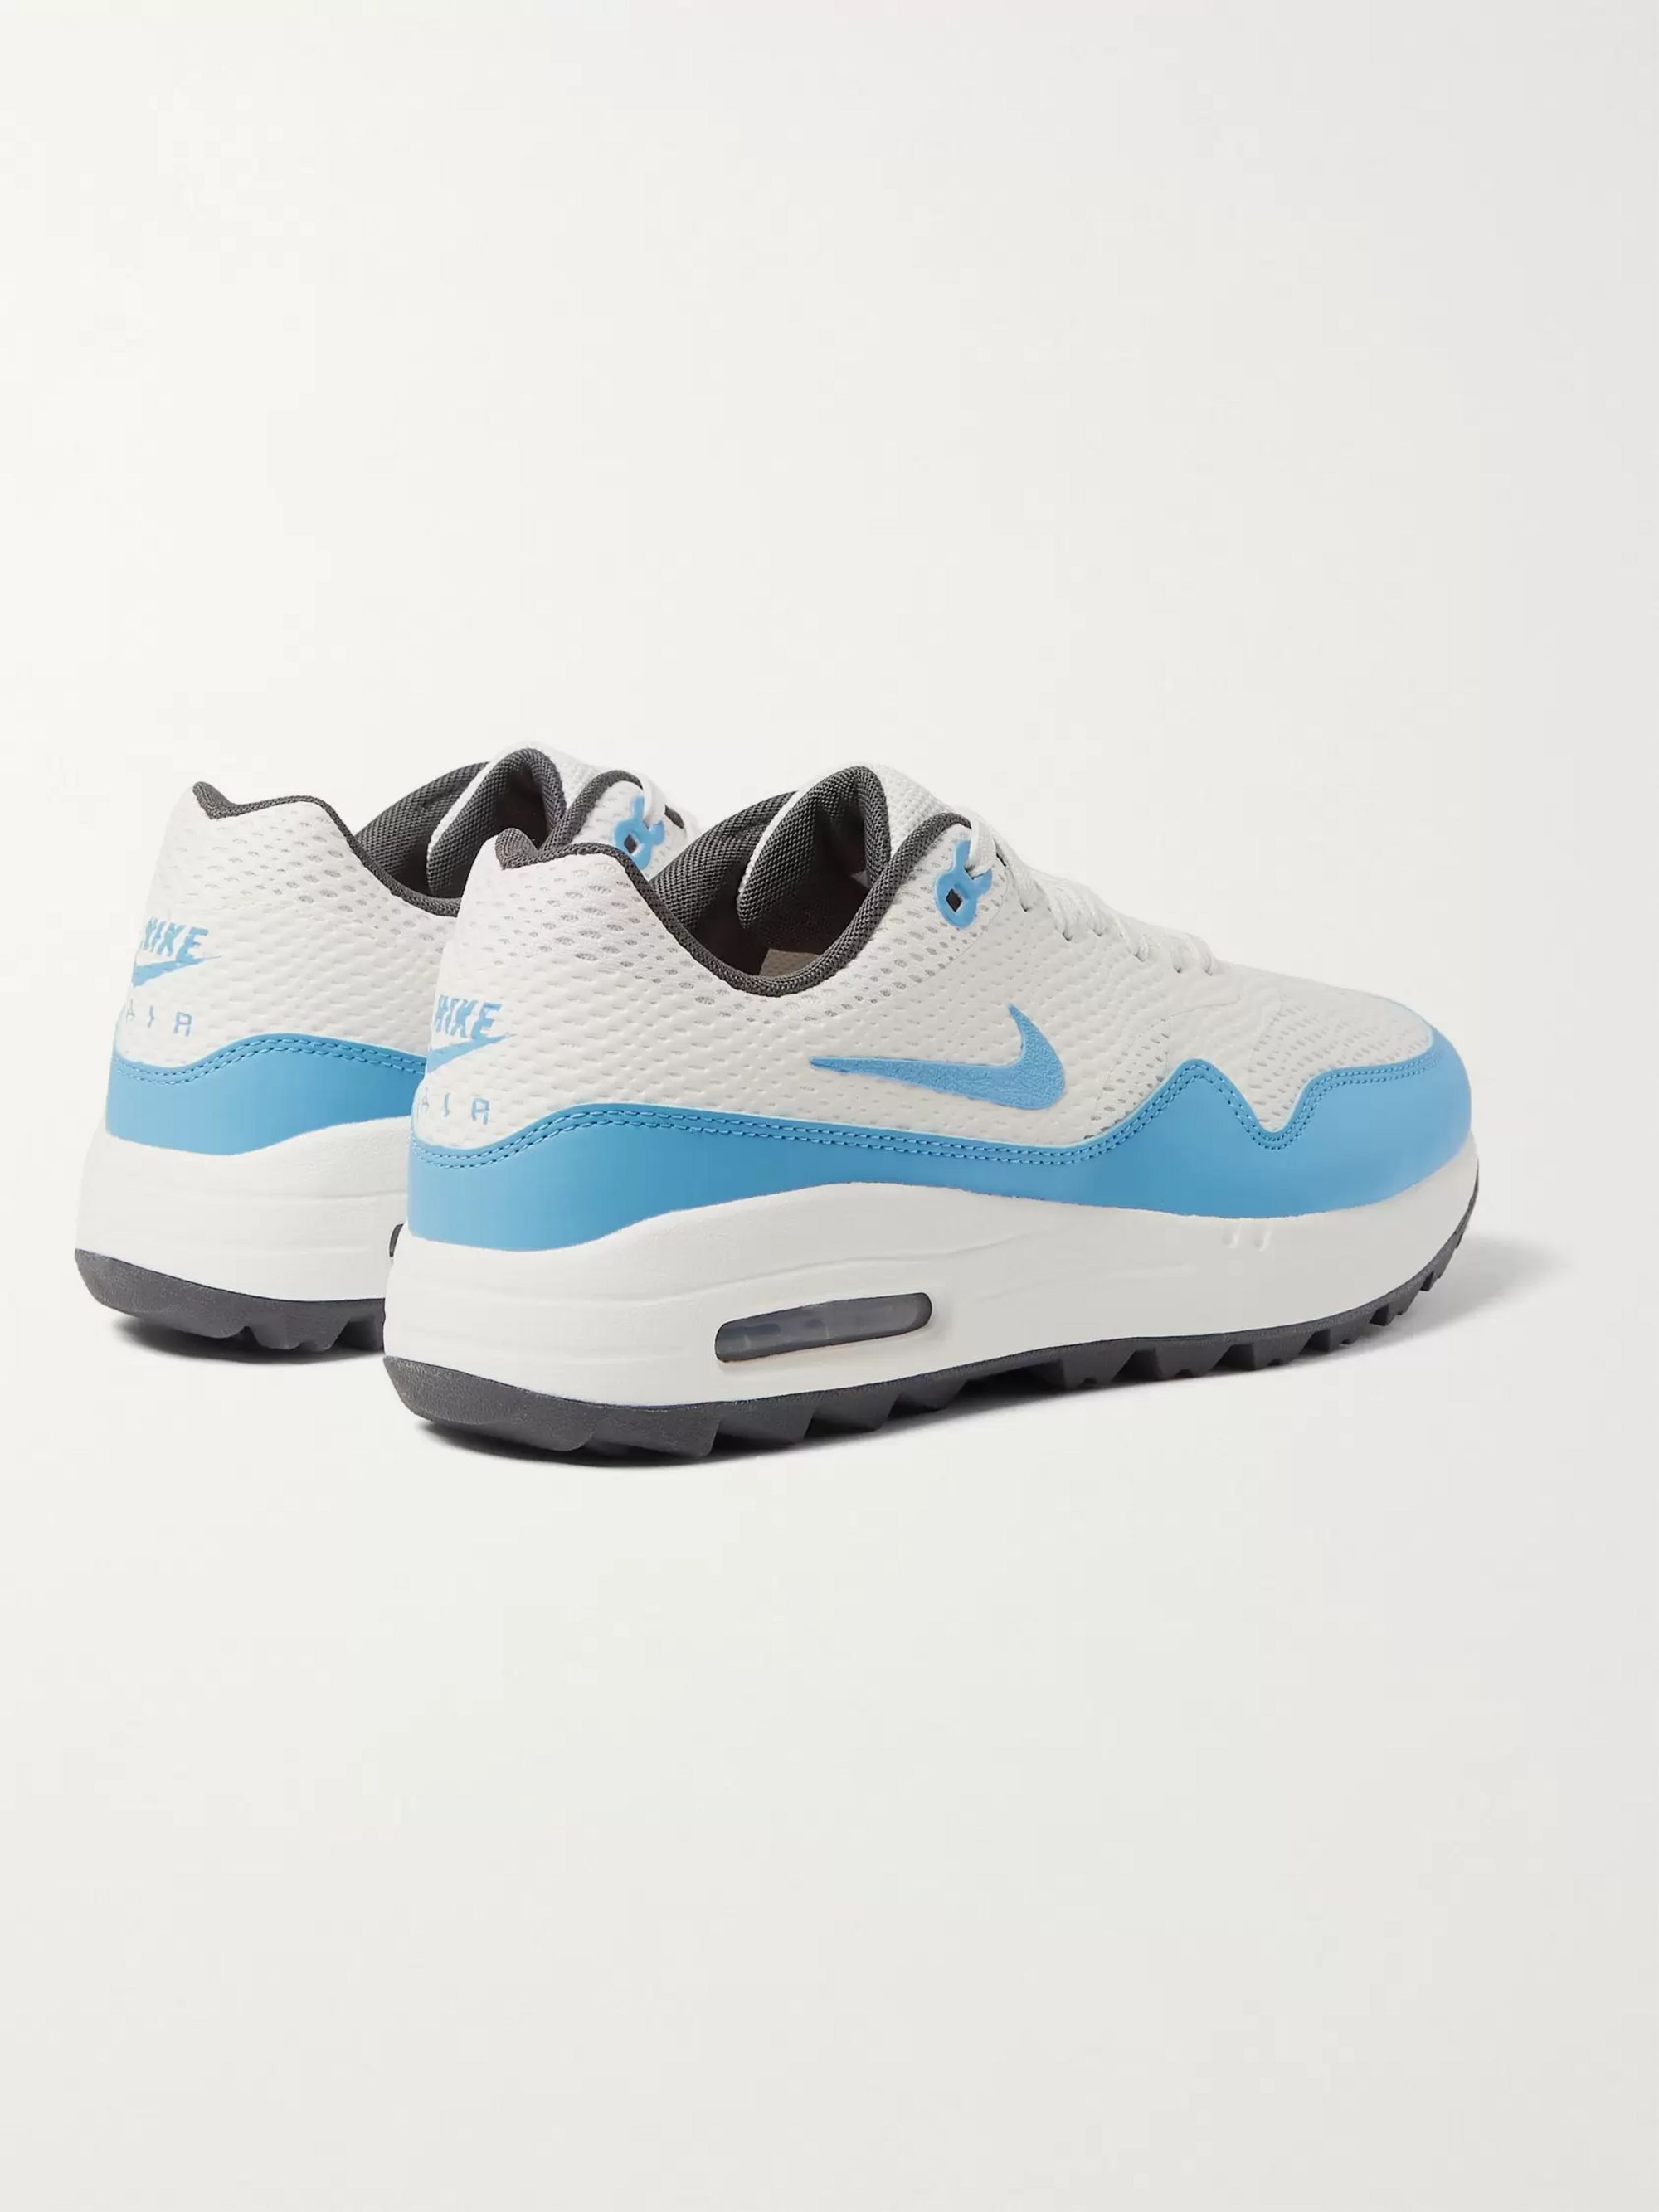 White Air Max 1g Faux Leather Trimmed Coated Mesh Golf Shoes Nike Golf Mr Porter